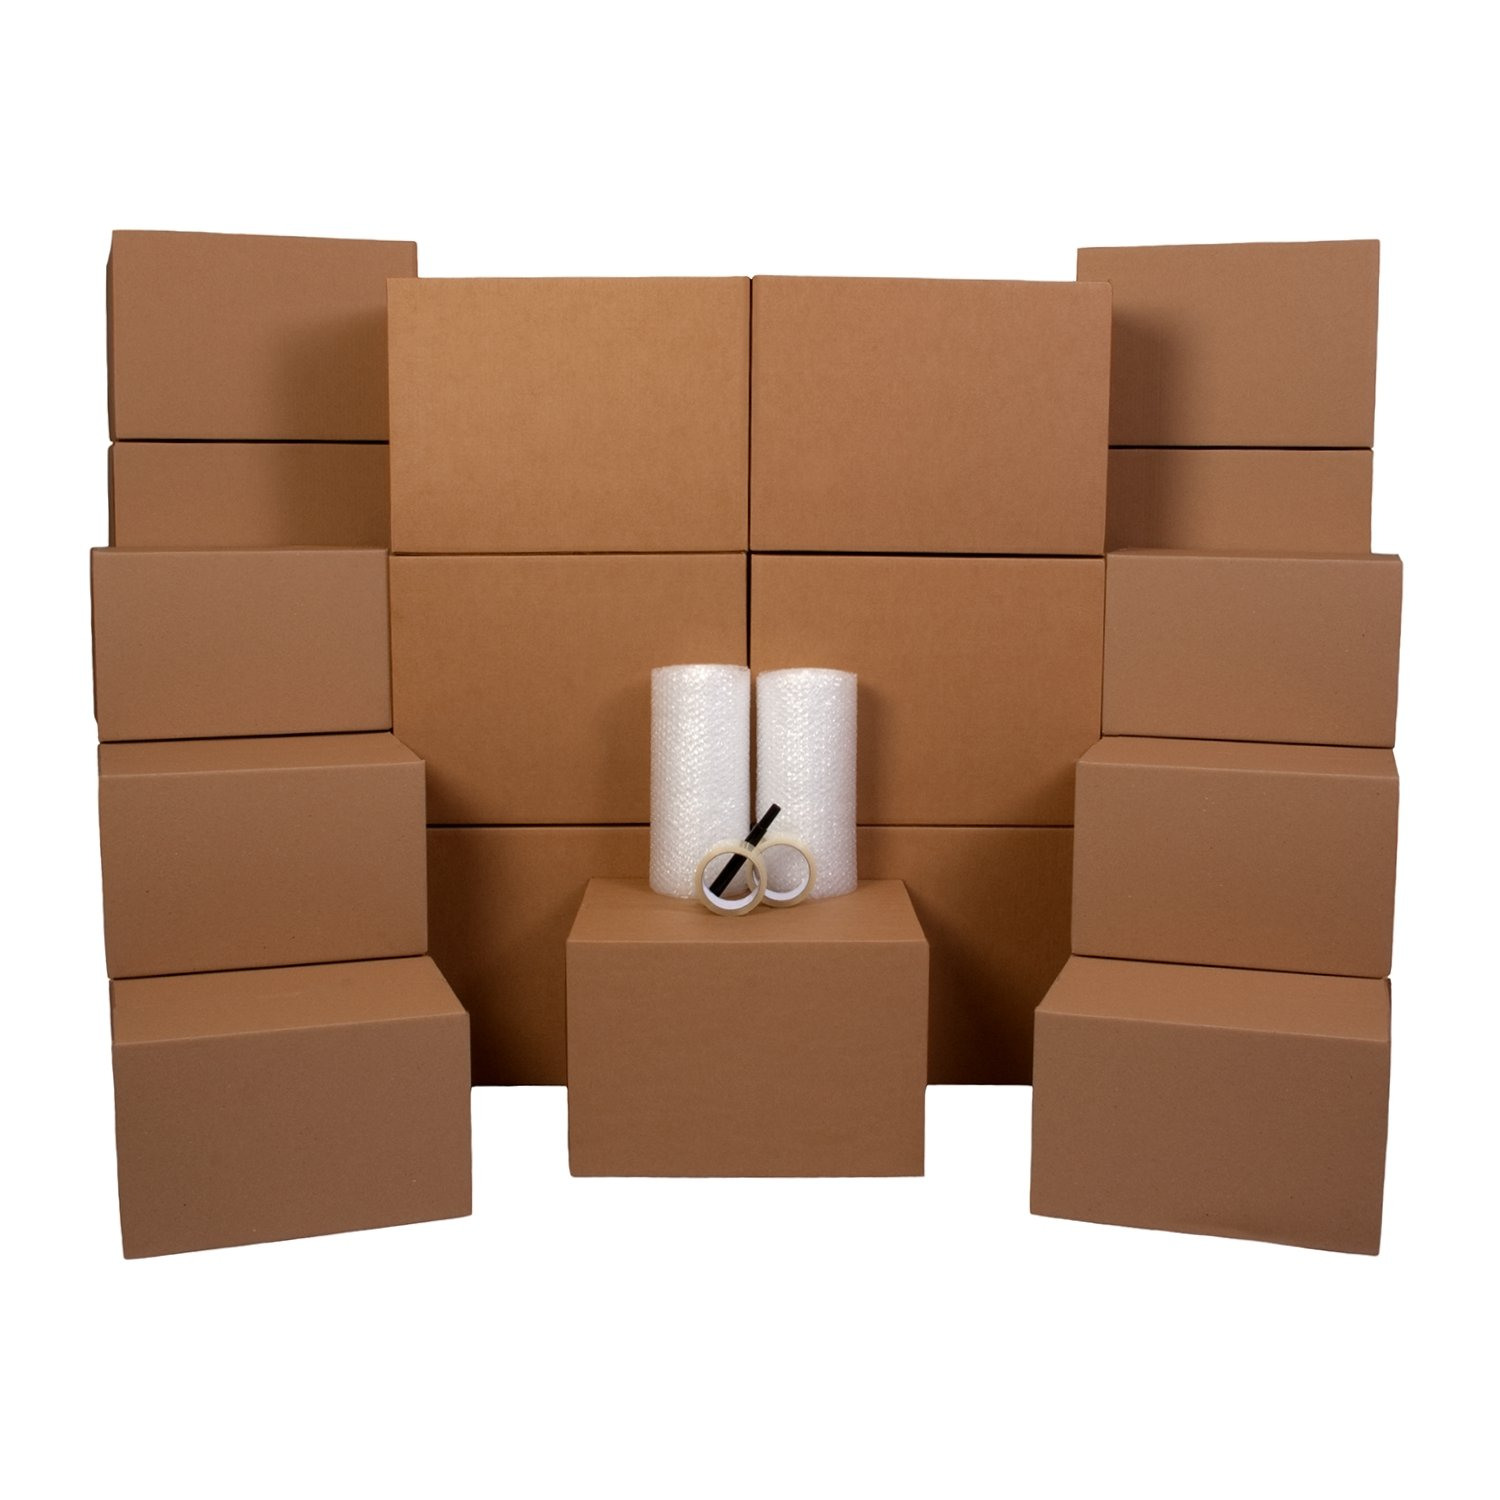 1-2 Room Moving Kit - 27 Moving Boxes & Supplies: